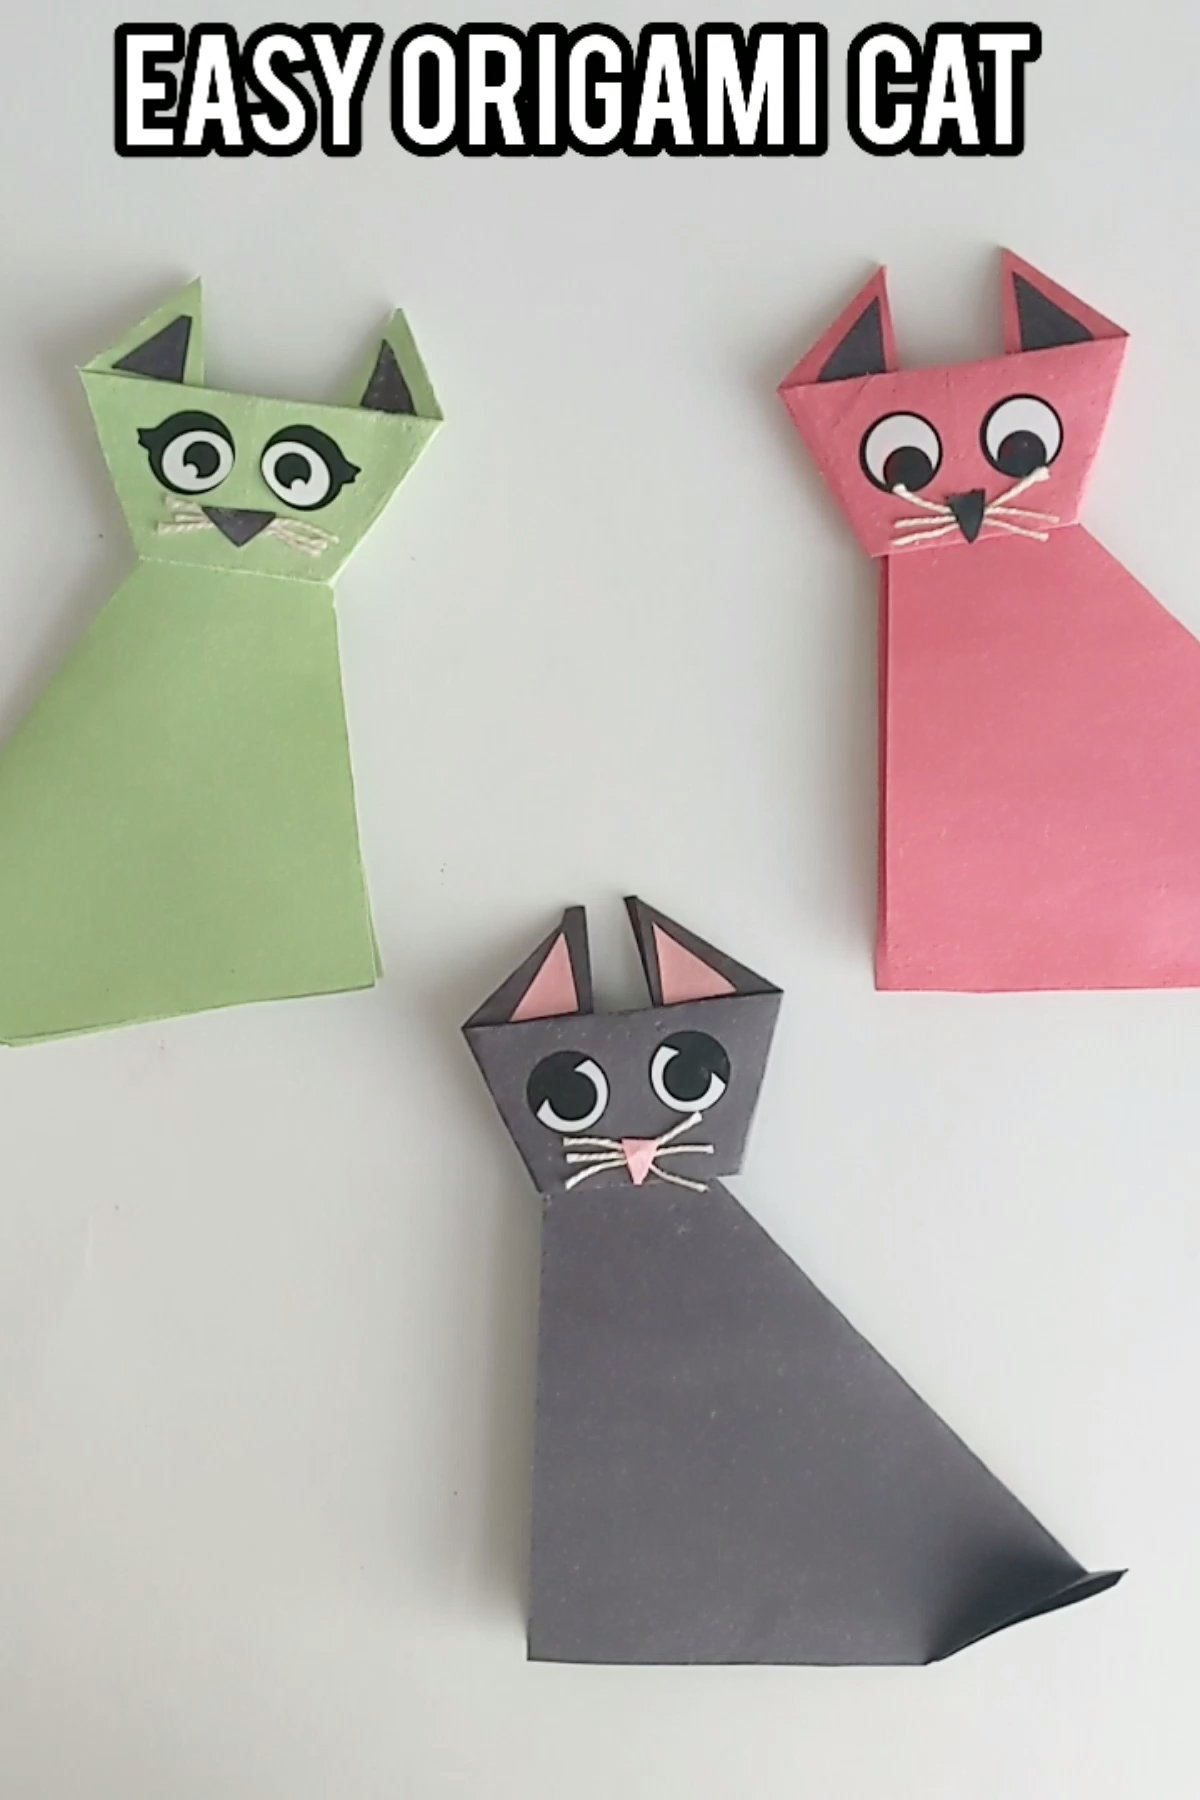 Easy origami step by step tutorial to make this adorable cat craft. #thejoyofsharing #origami #kidscrafts #easyorigami #origamiforkids #papercrafts #catcraft #artsandcrafts #teachersfollowteachers via @4joyofsharing